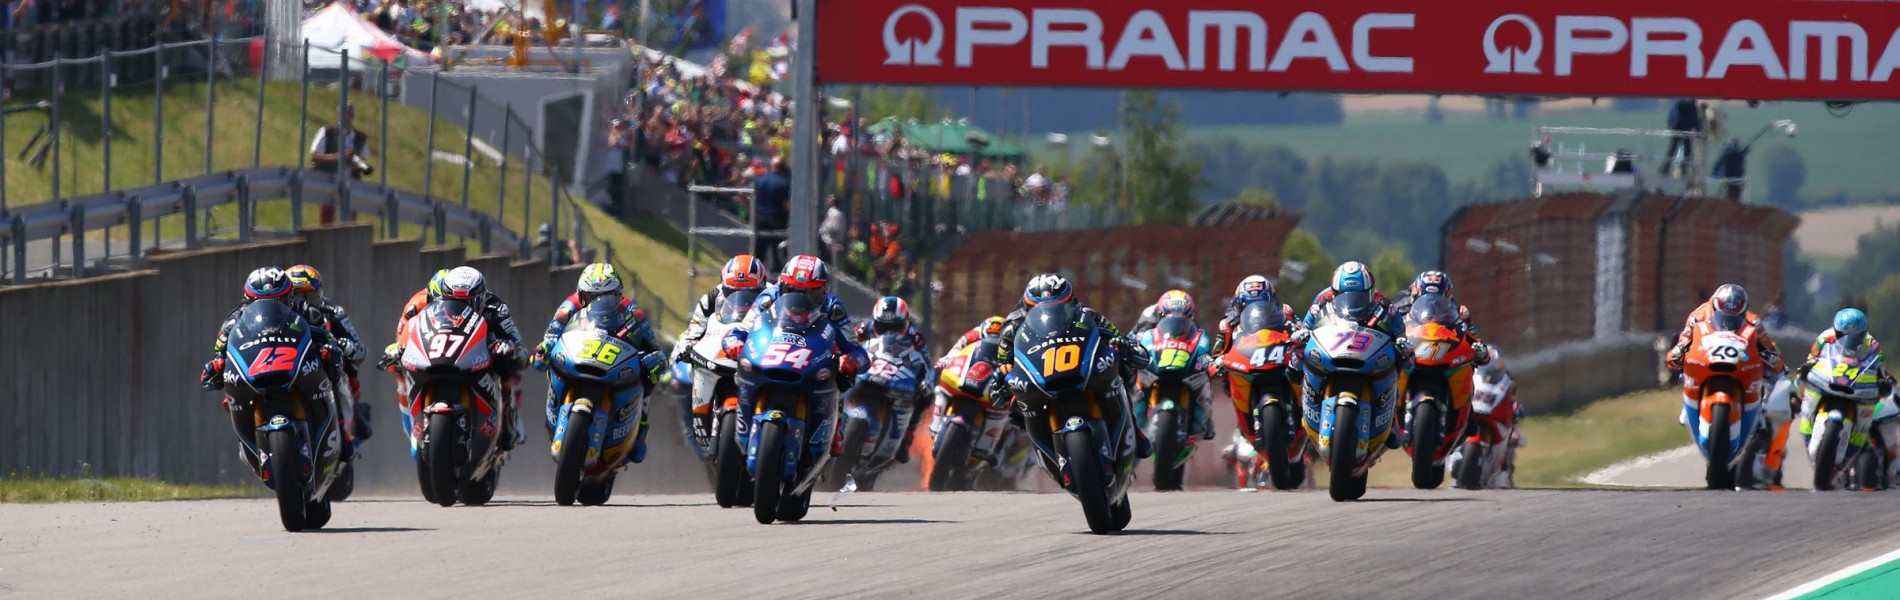 Image from the 2018 MotoGP event in Sachsenring, GermanyImage from